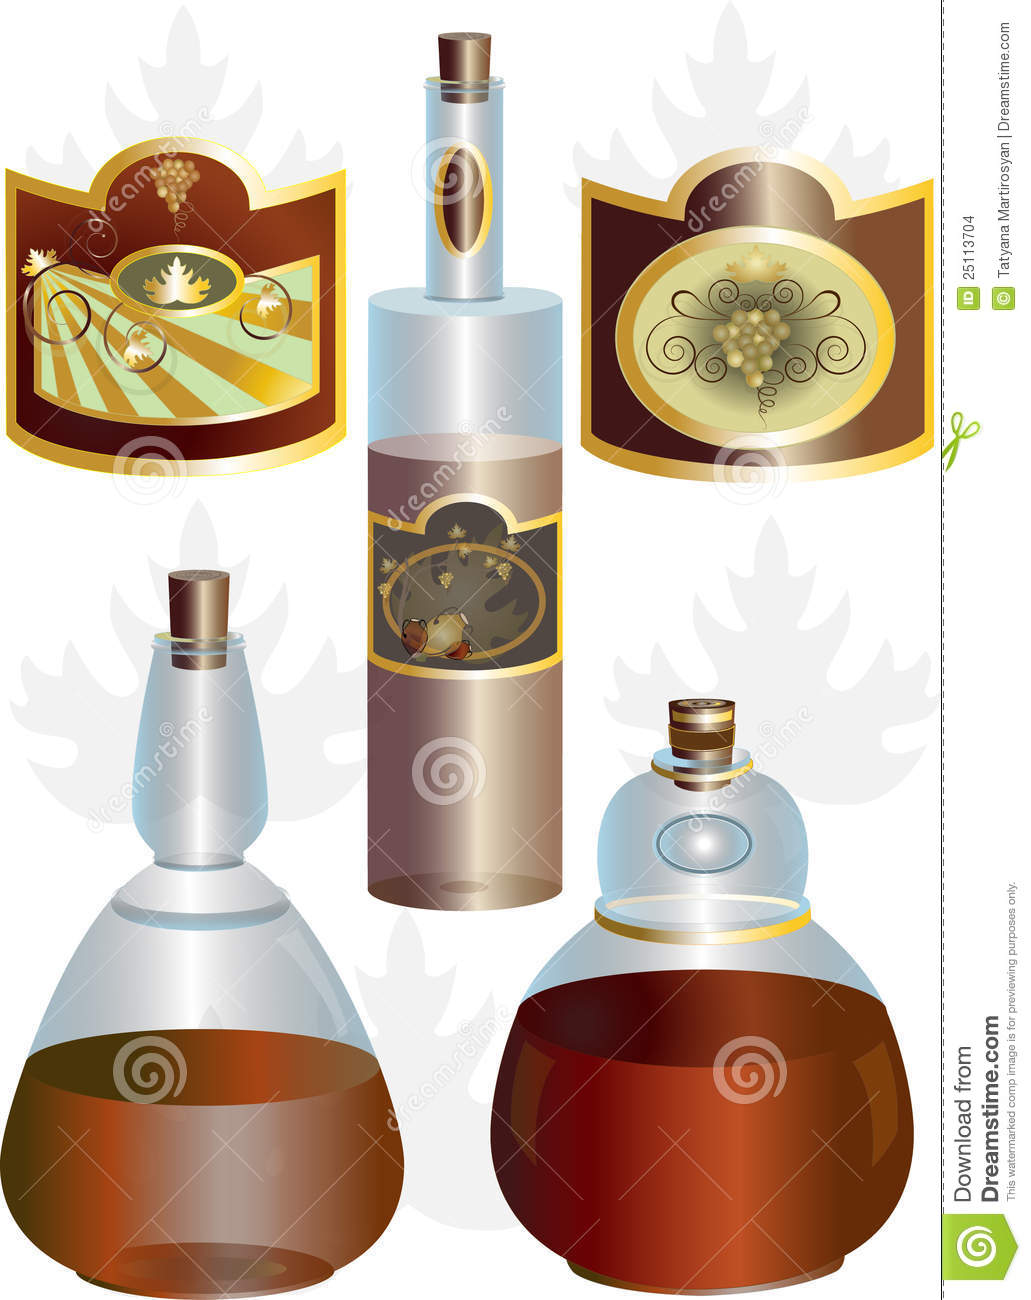 Unusual shape of bottles and labels stock images image for Interesting bottle shapes